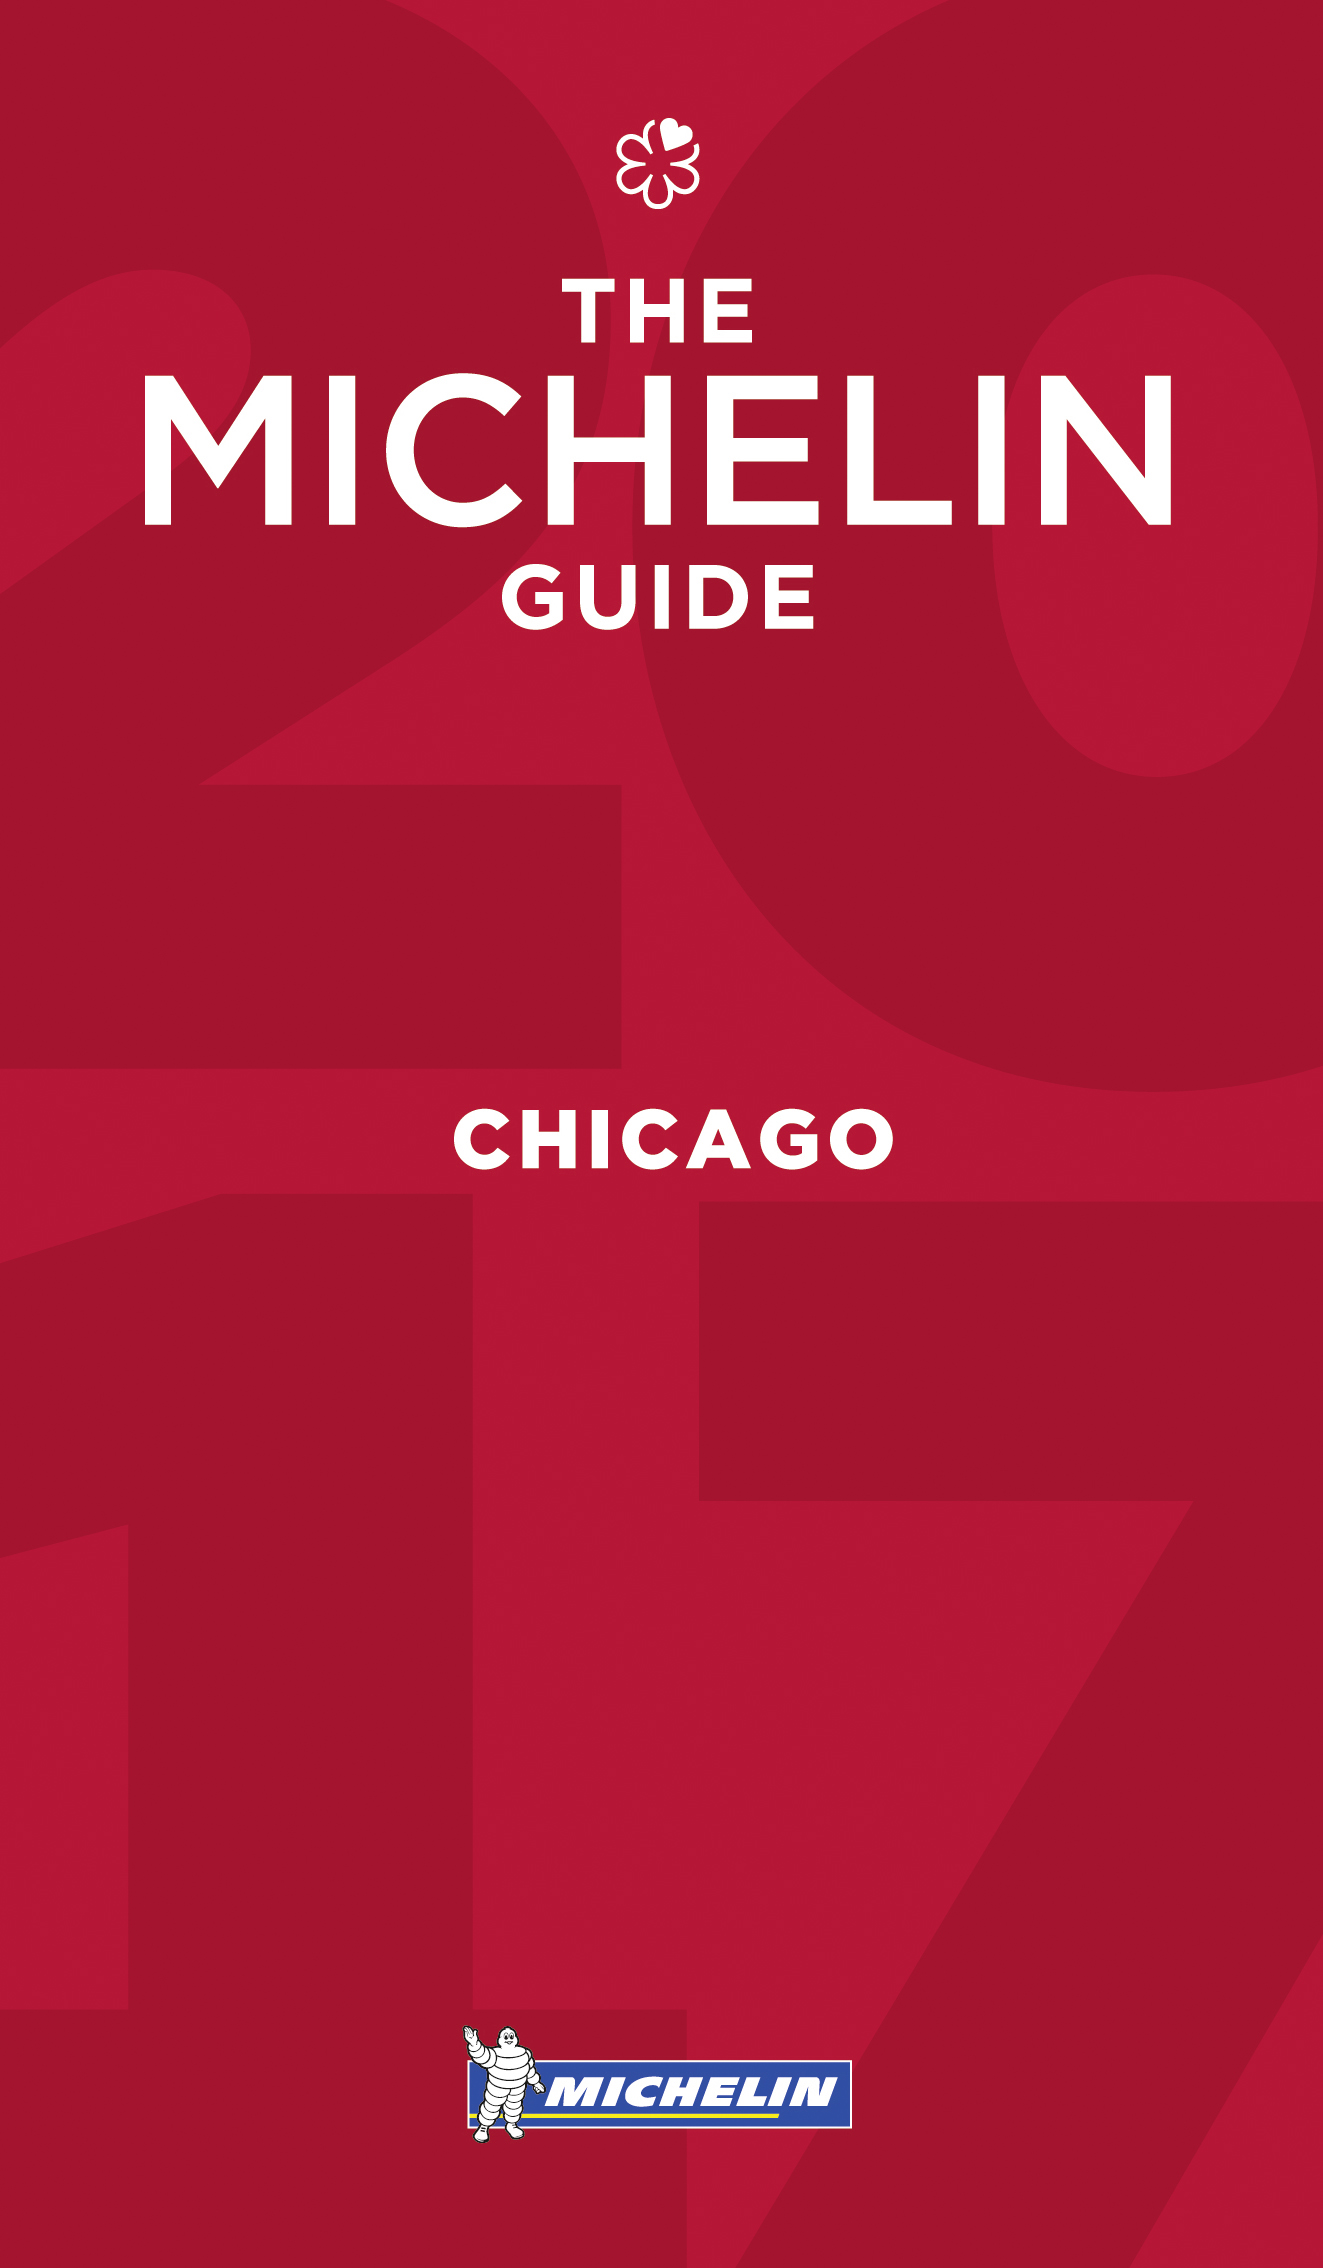 The red book cover to the Michelin Guide for Chicago.